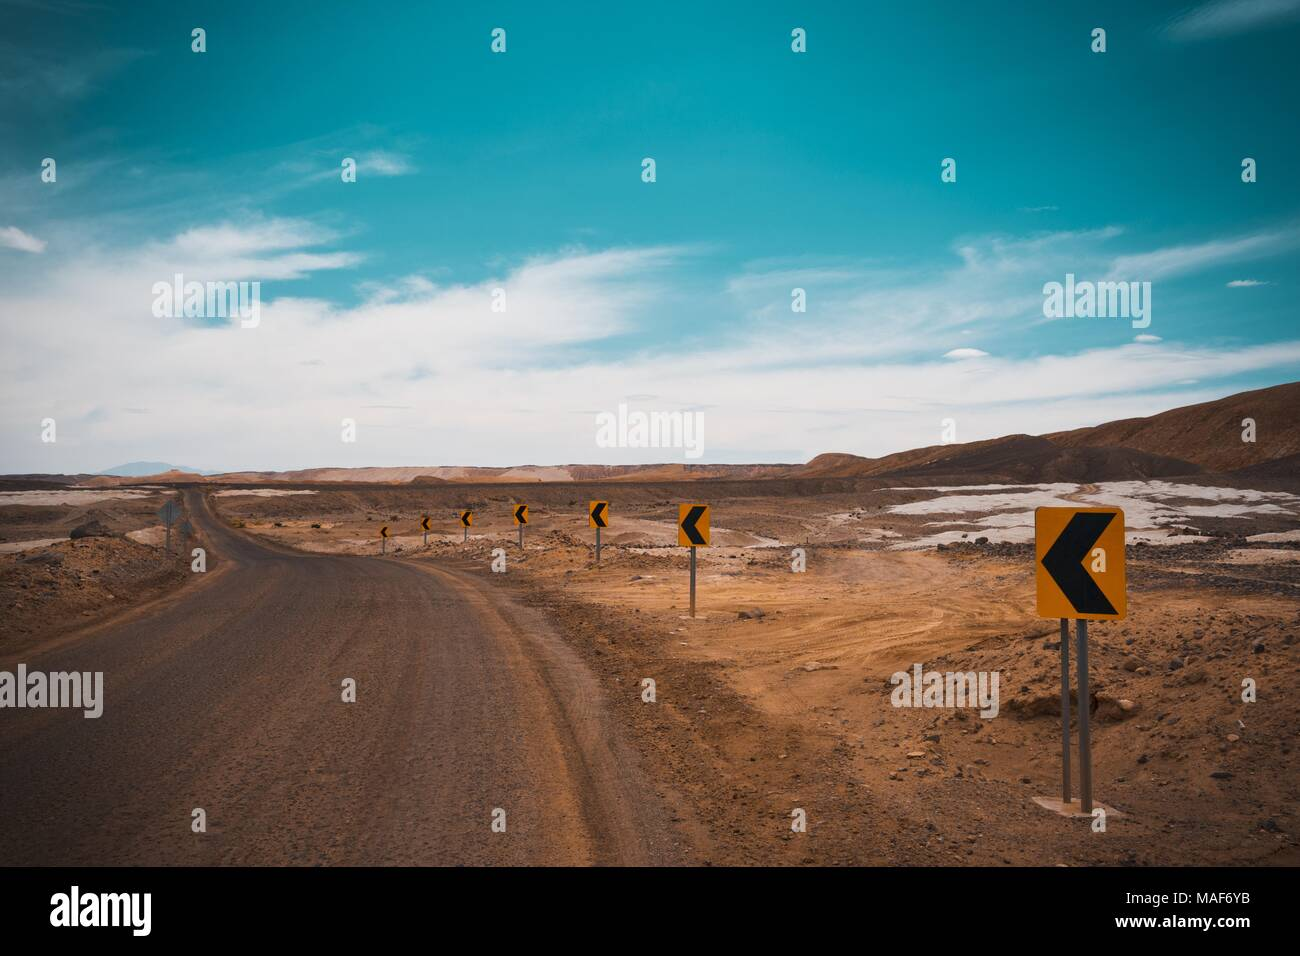 Atacama road, Chile - Stock Image